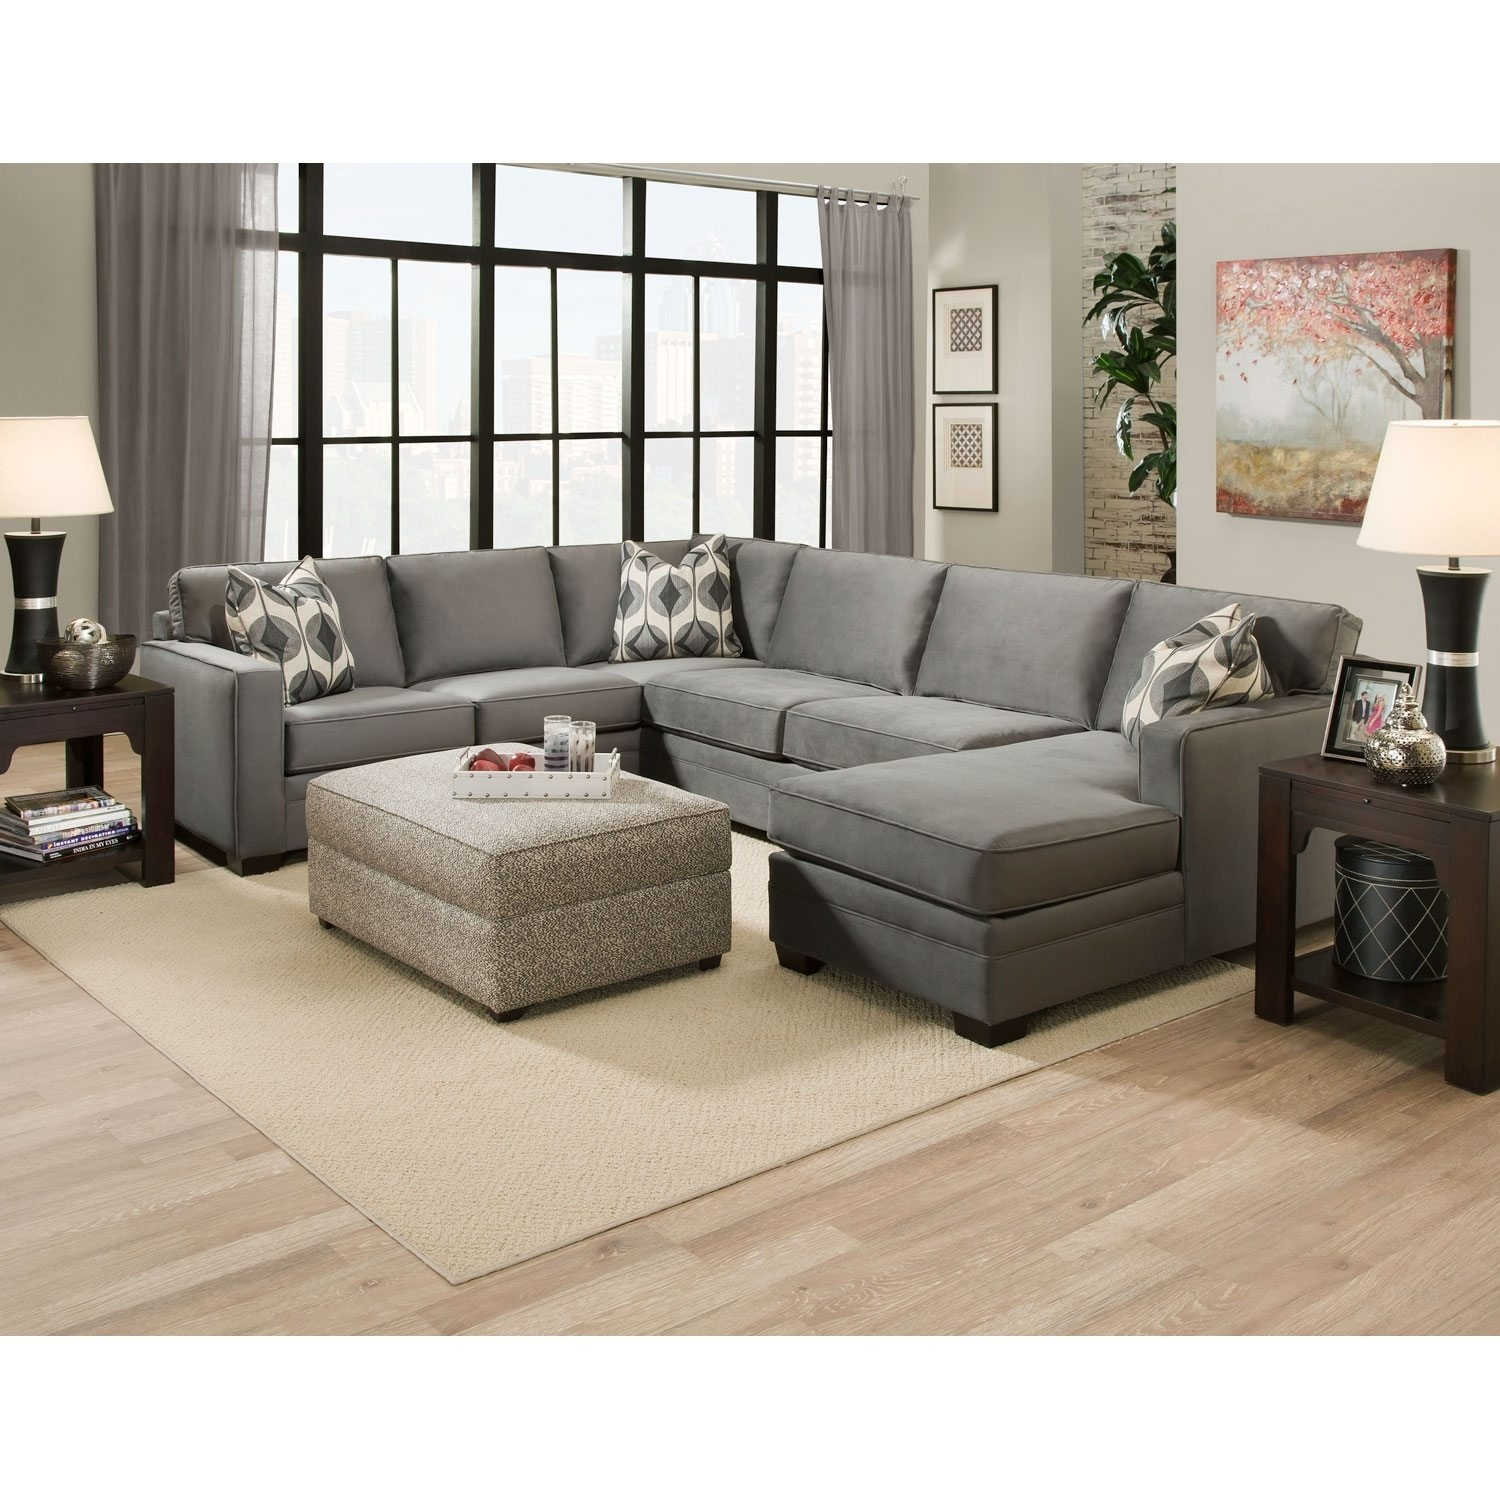 most durable upholstery fabric for sofa how to get biro ink off leather 12 collection of sectional